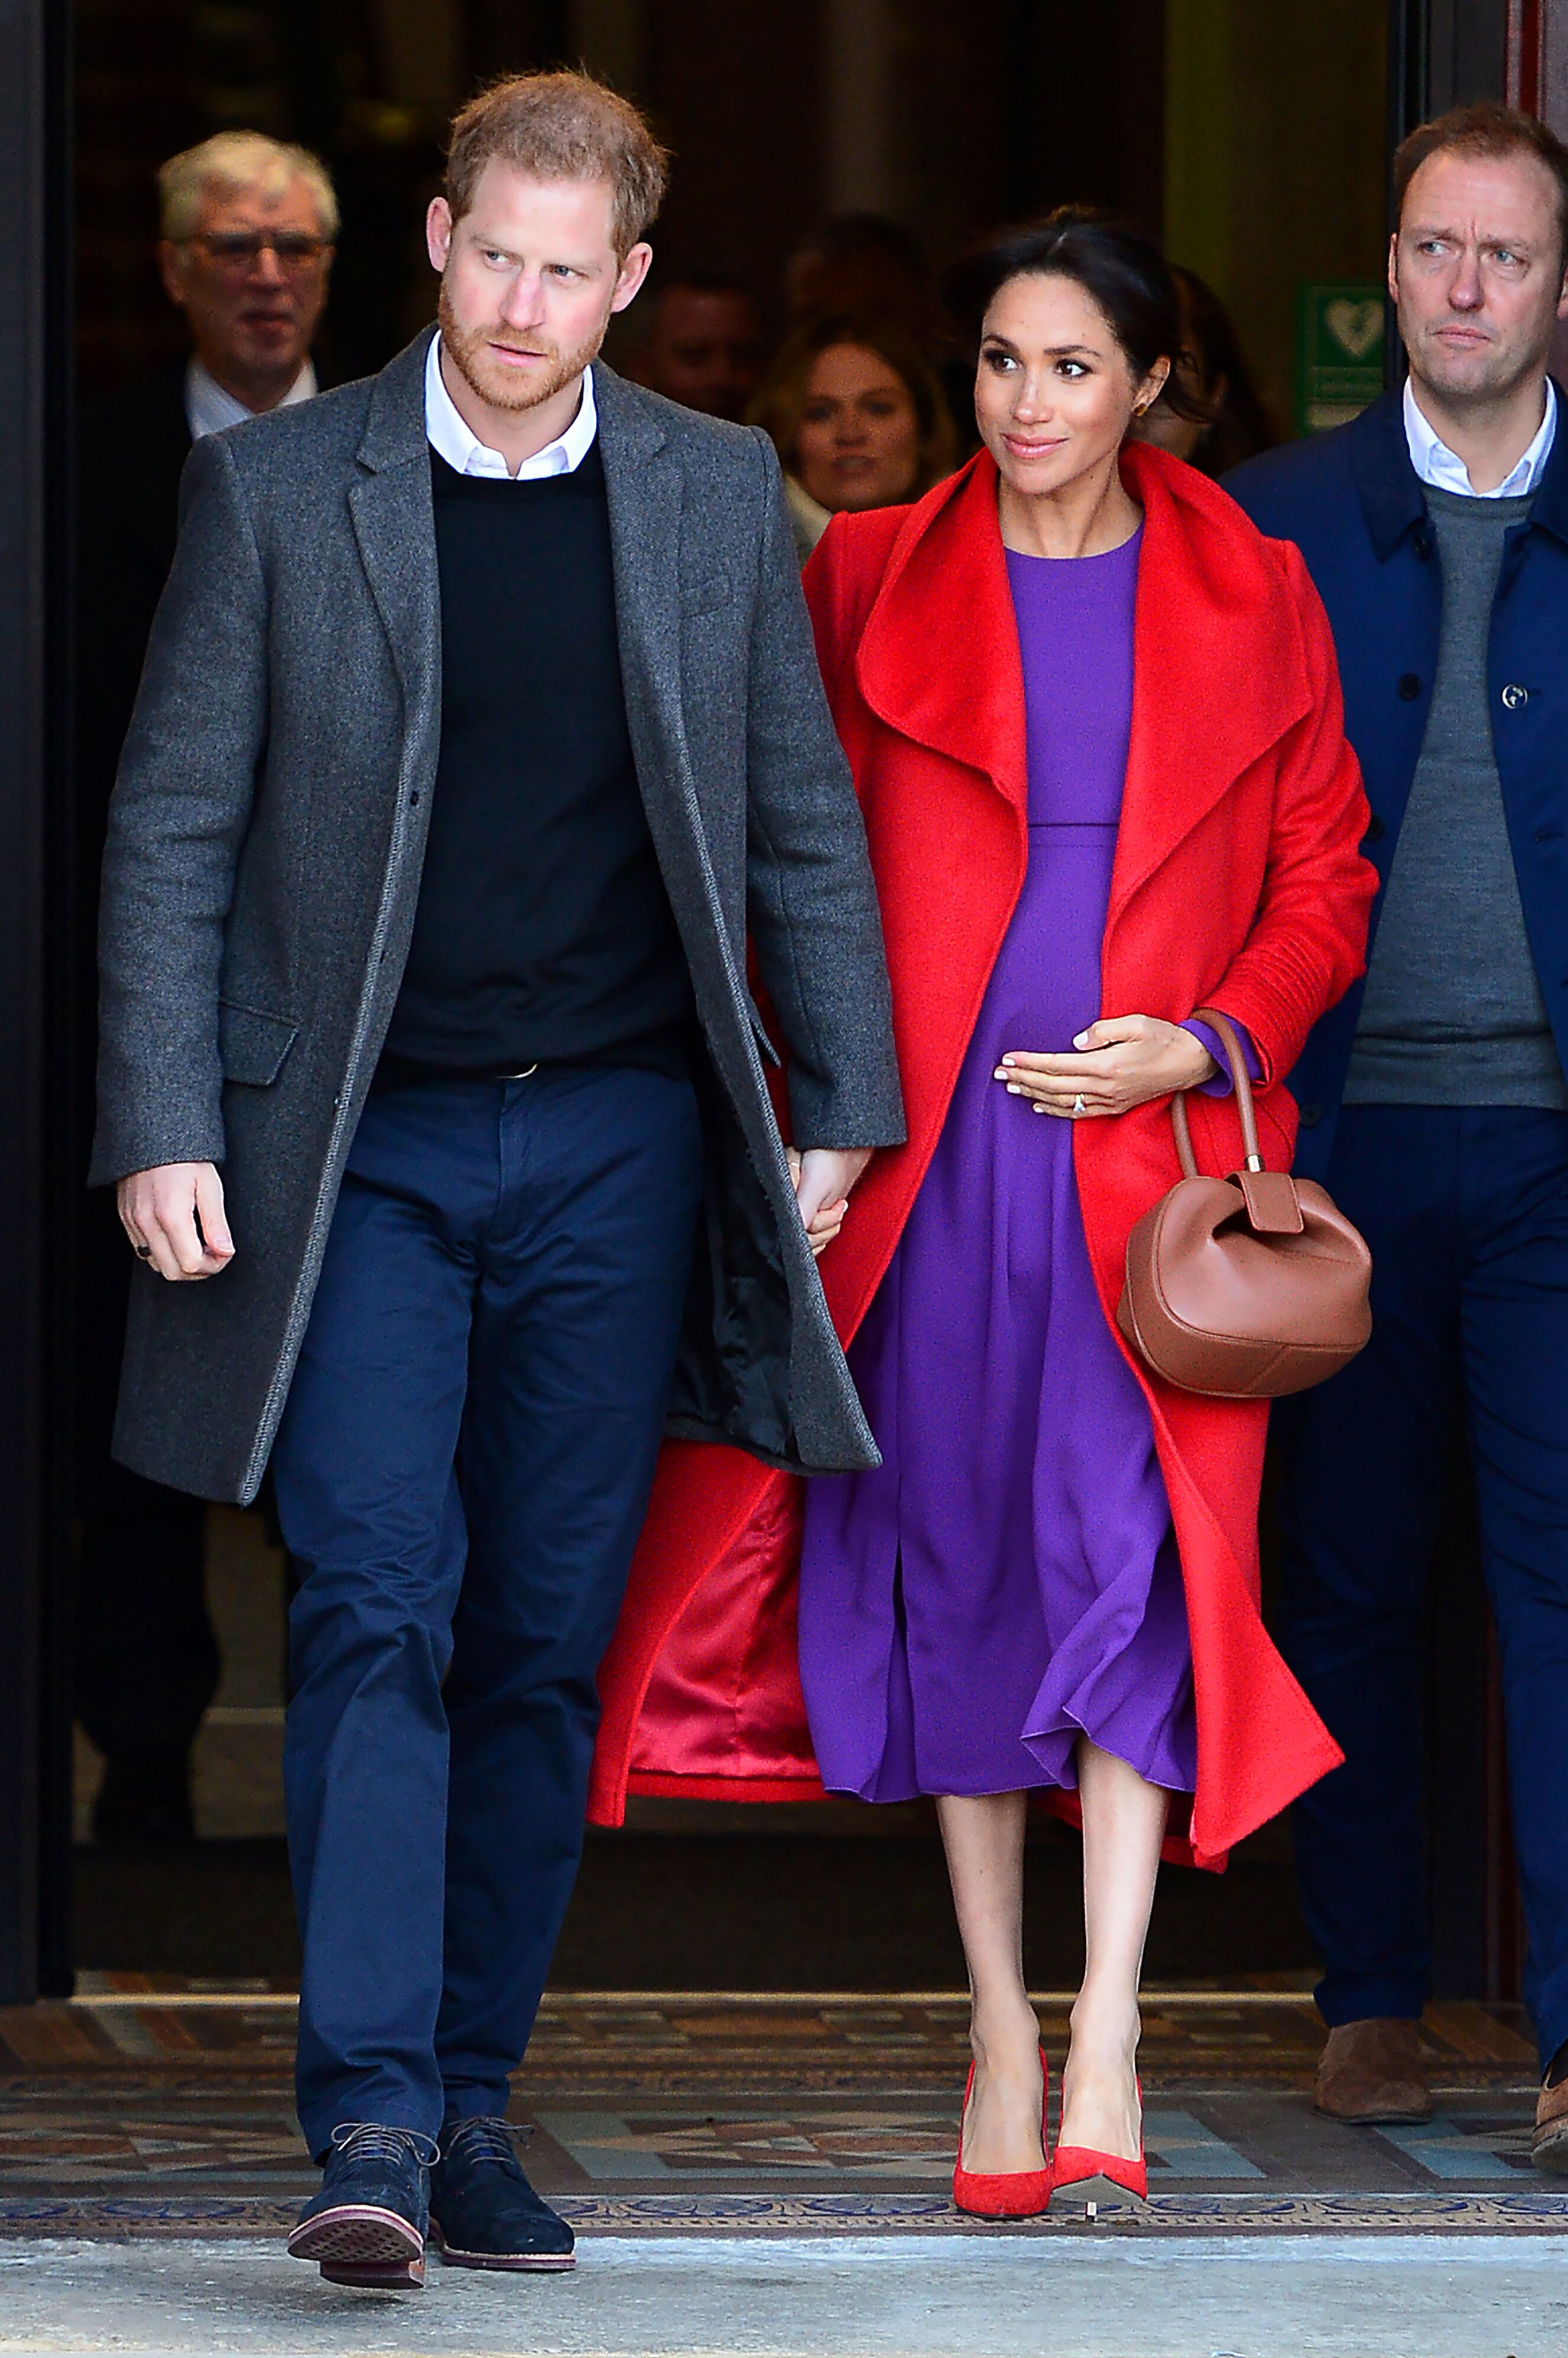 Prince Harry, Duke of Sussex and Meghan, Duchess of Sussex depart from Birkenhead Town Hall on January 14, 2019 in Birkenhead, England | Photo: Getty Images